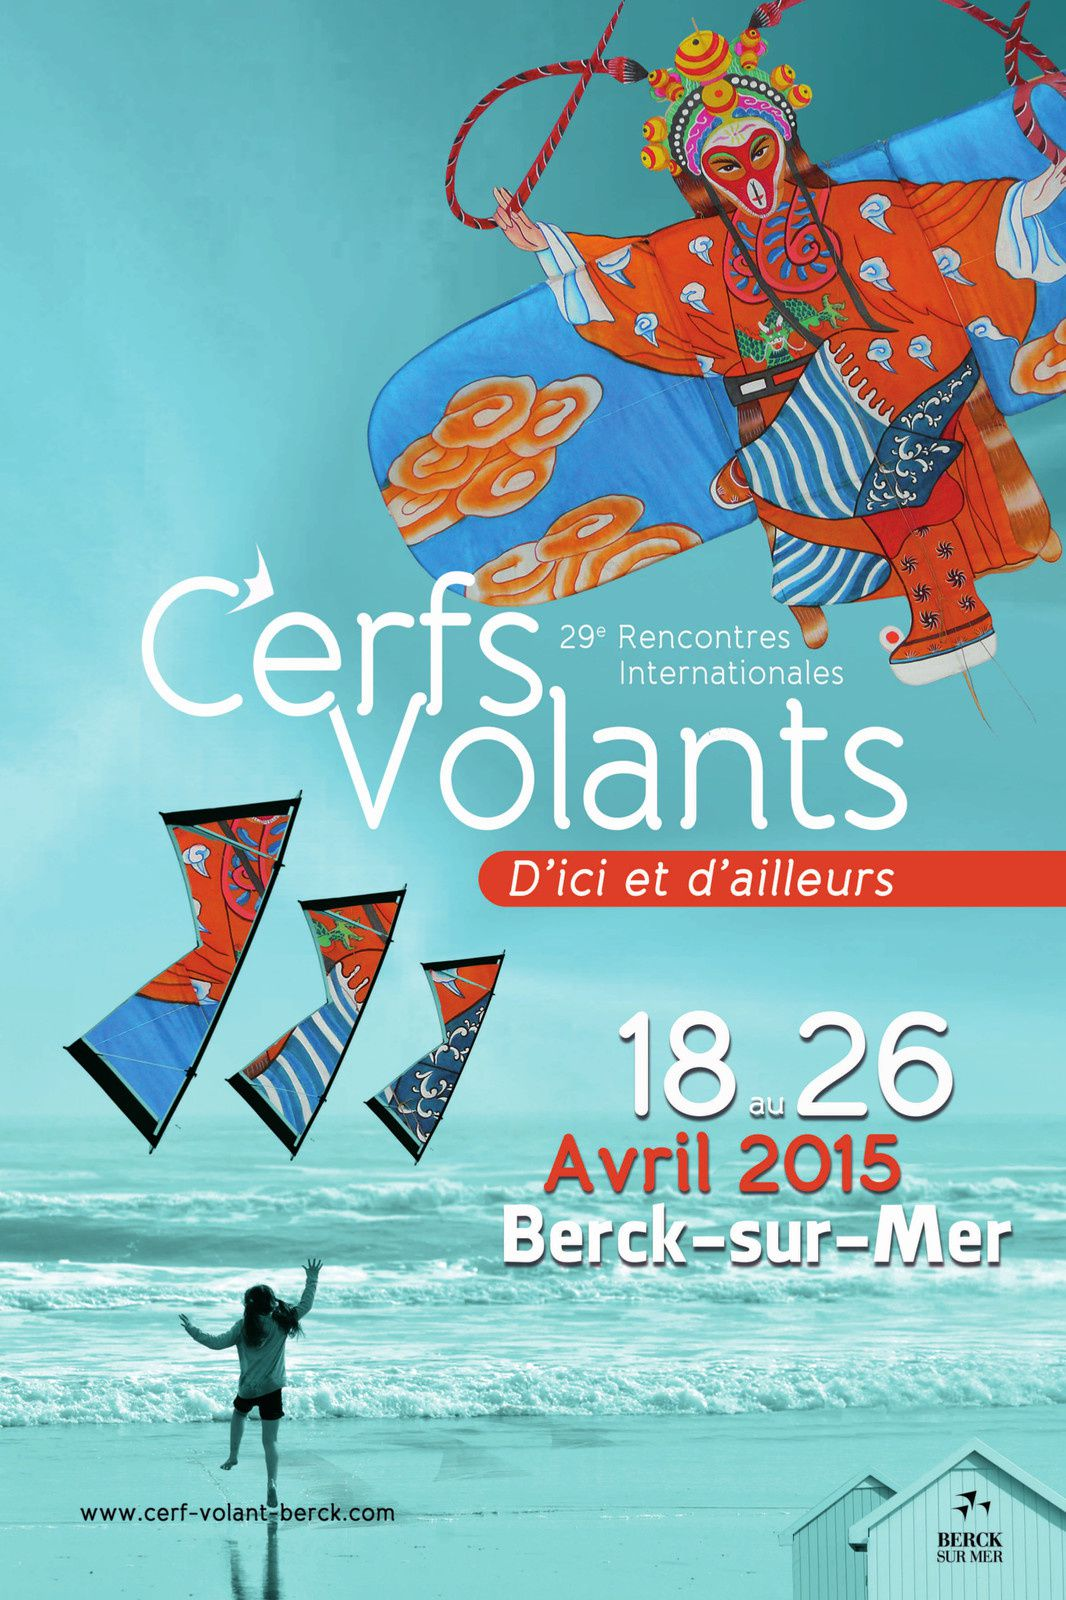 Rencontres internationales de cerfs volants 2016